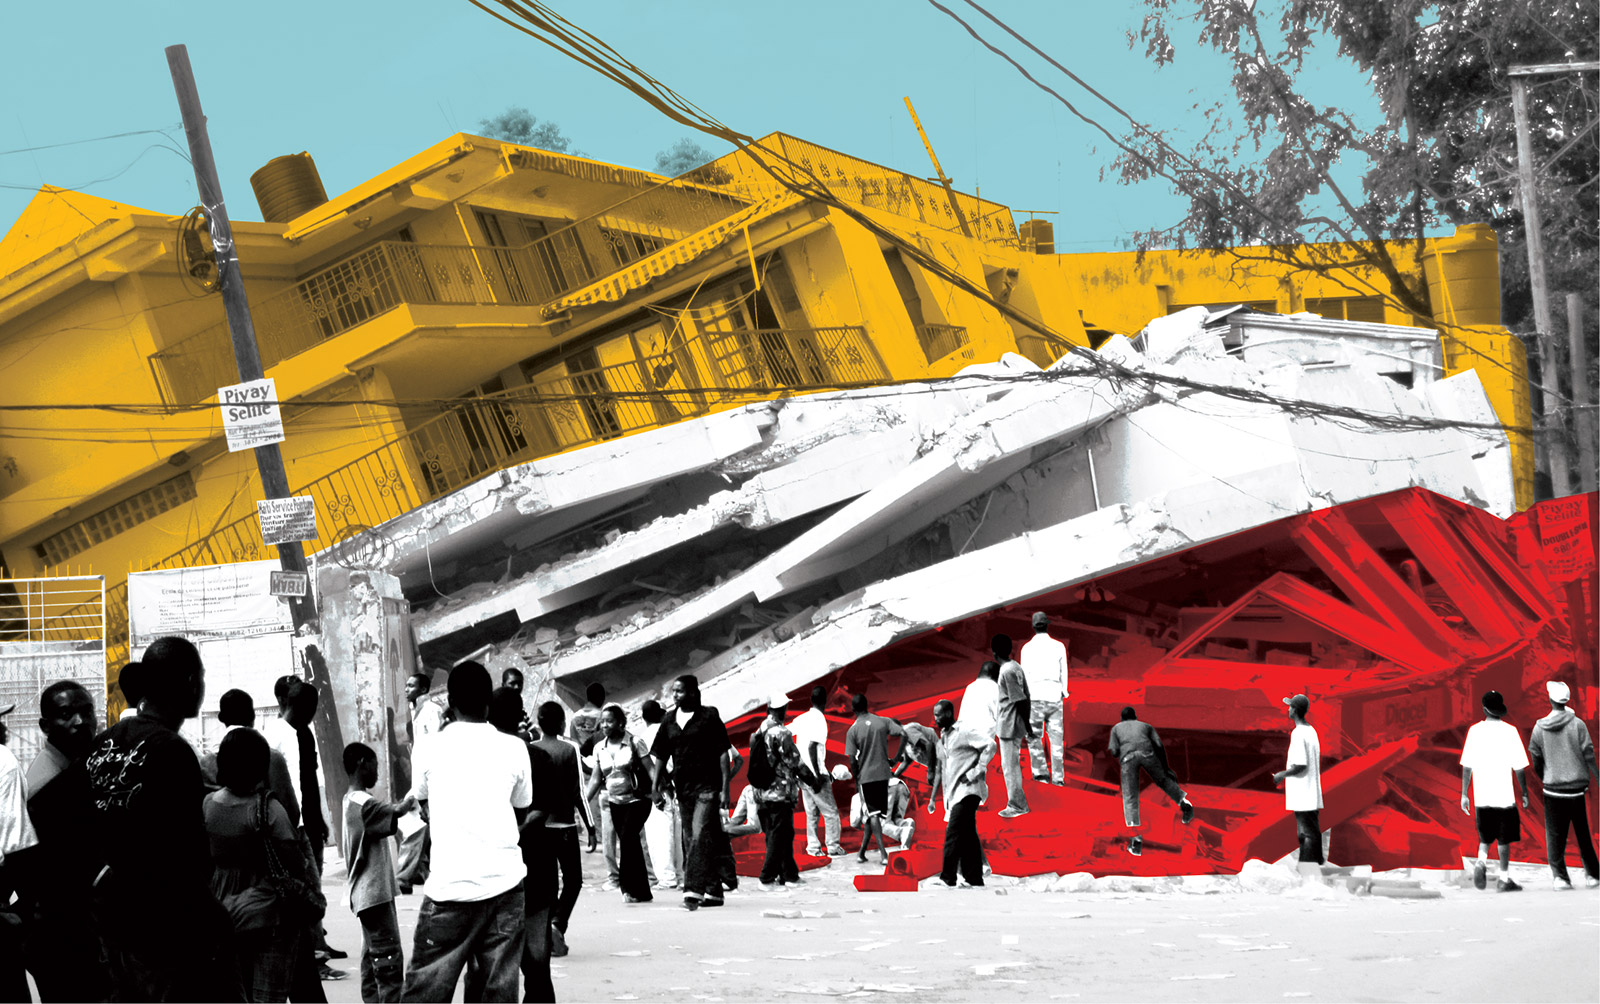 Collaged photograph of the 2010 Haiti earthquake highlighting the various layers of failed building construction